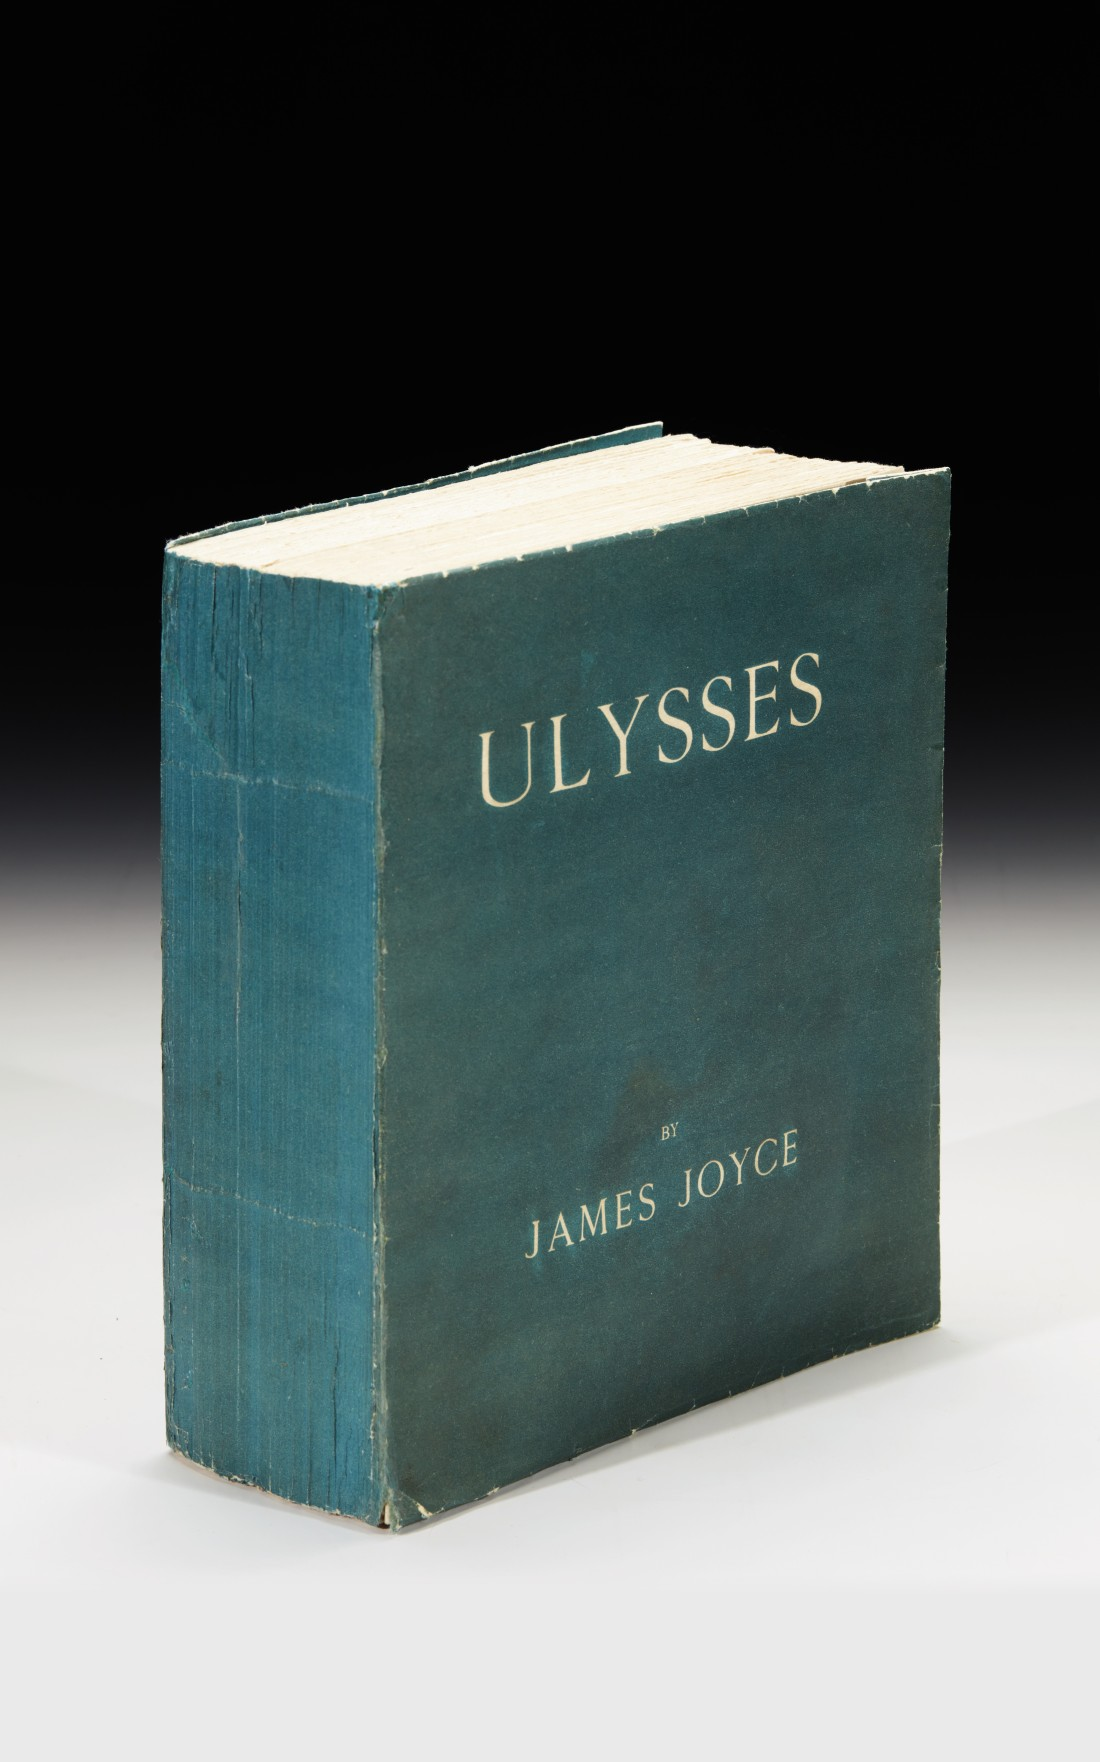 Lot 188, James Joyce Ulysses (i)